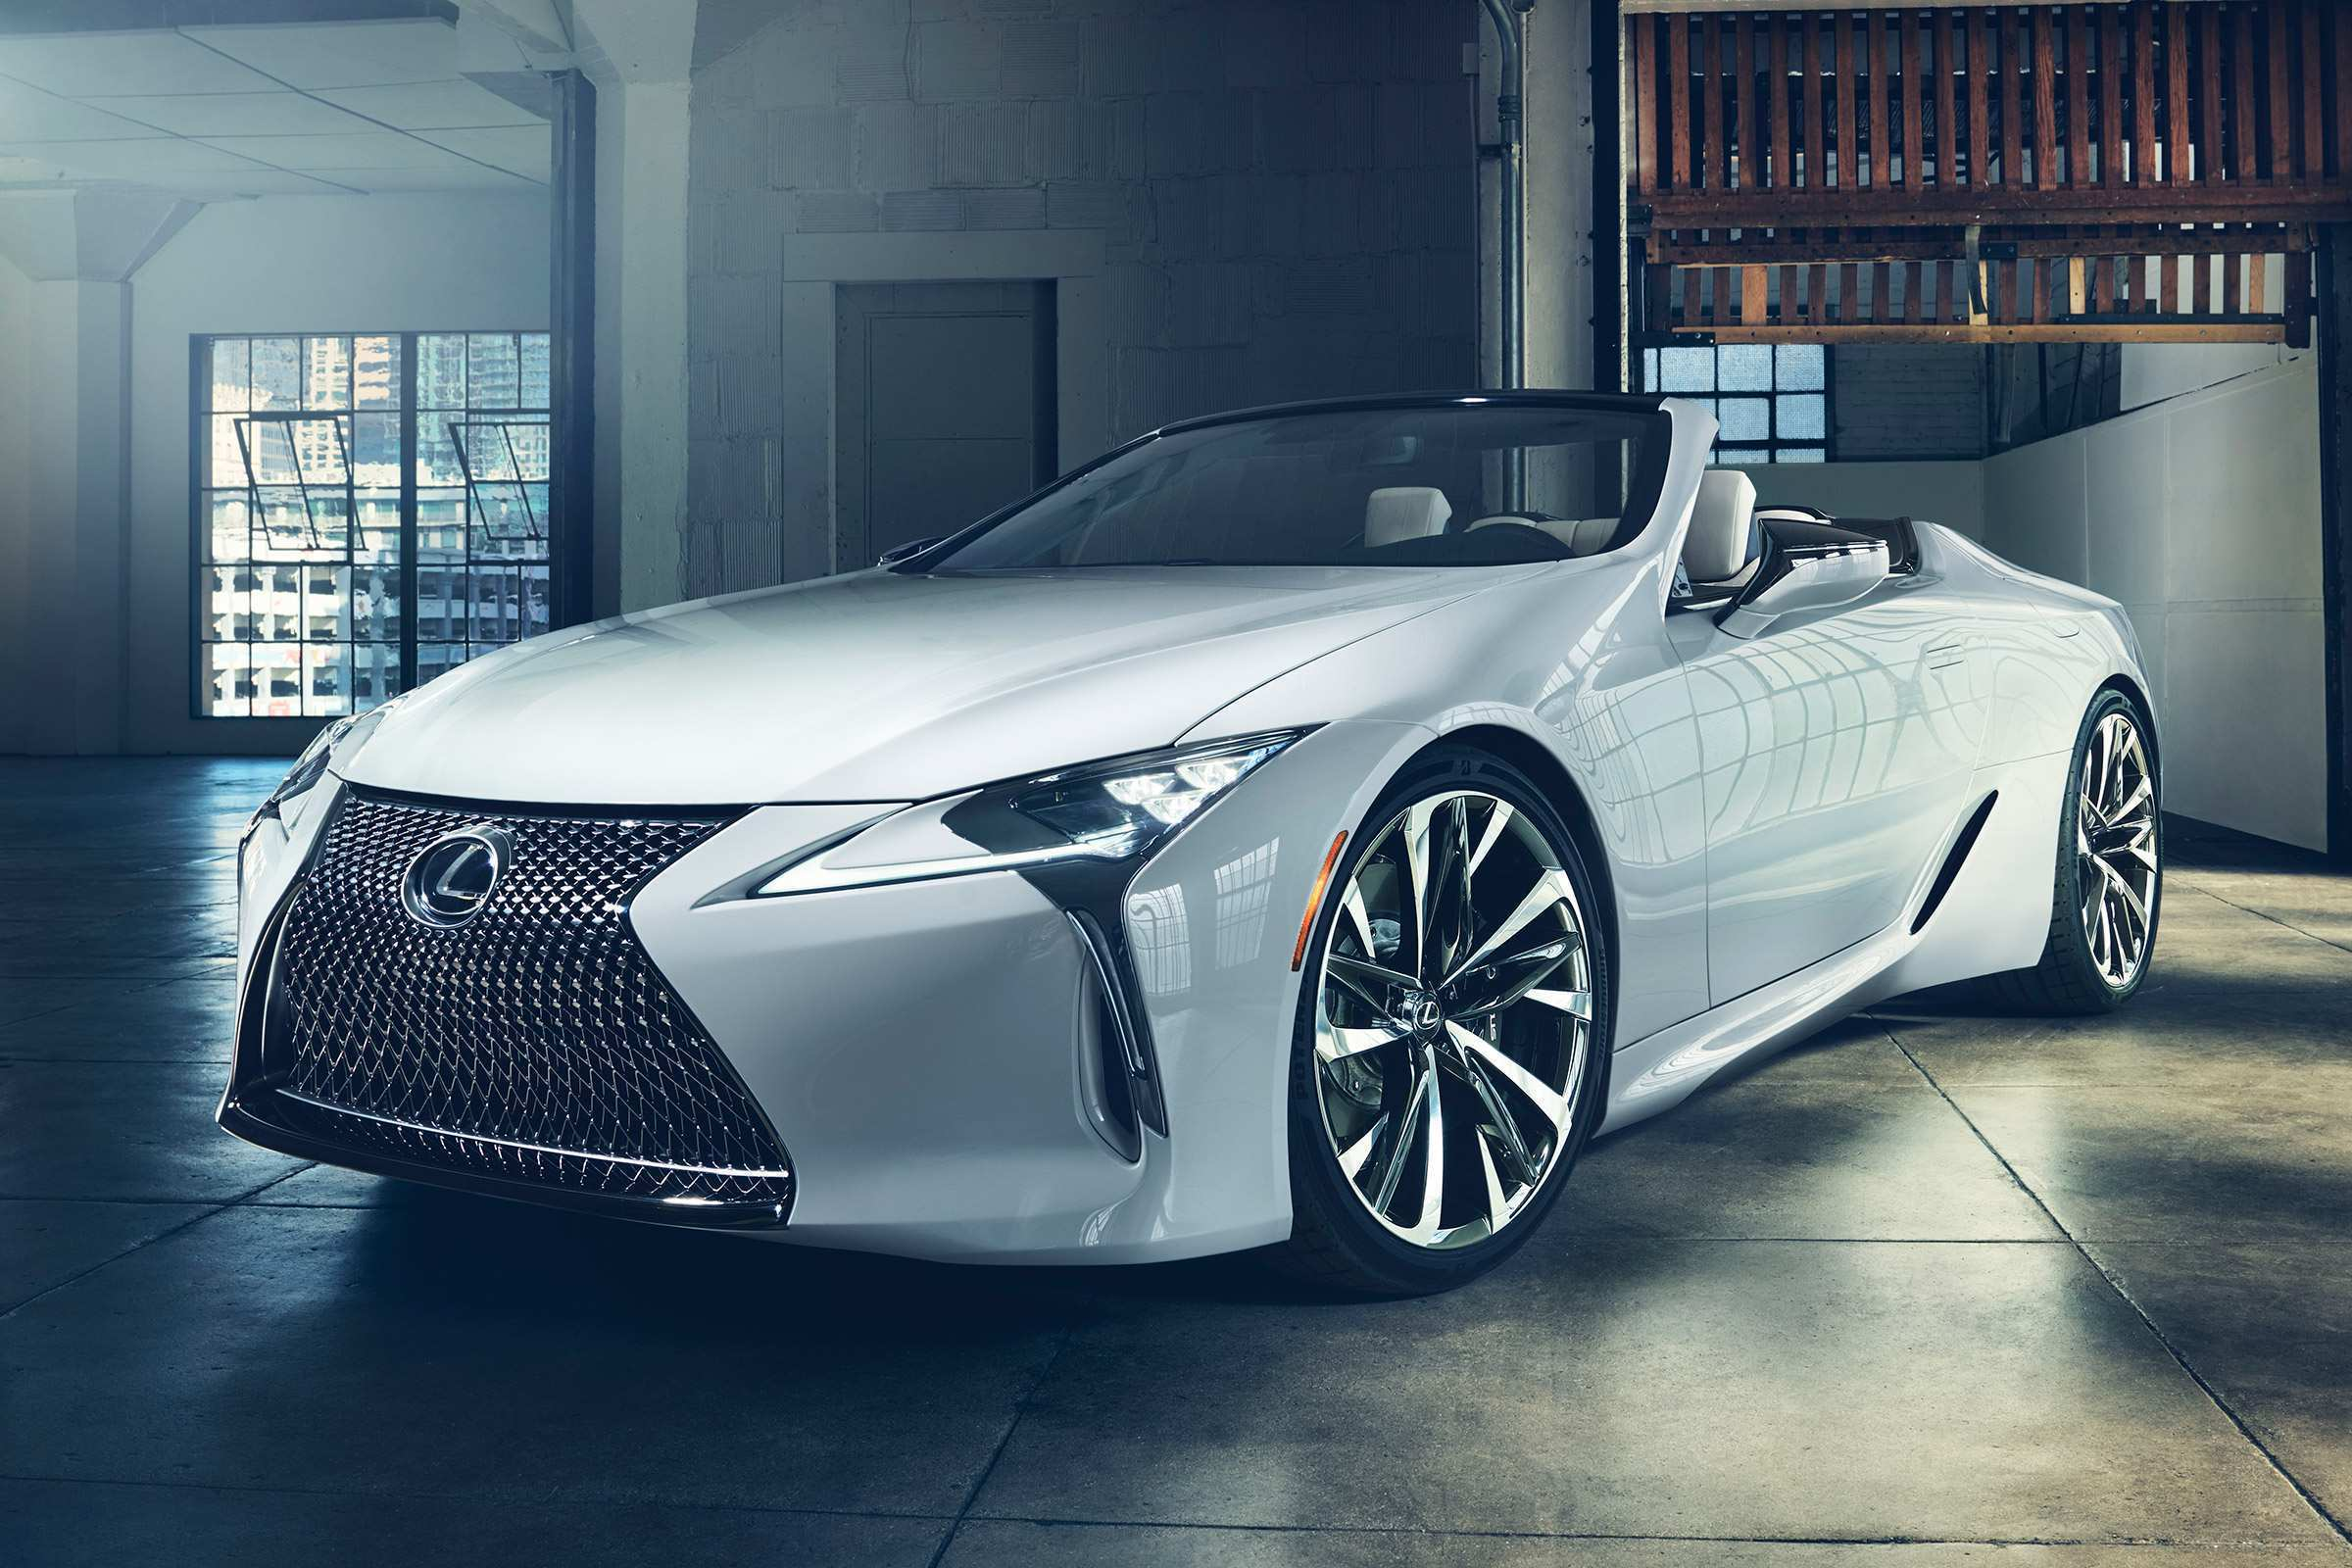 68 Best Review 2019 Lexus Concept Reviews for 2019 Lexus Concept